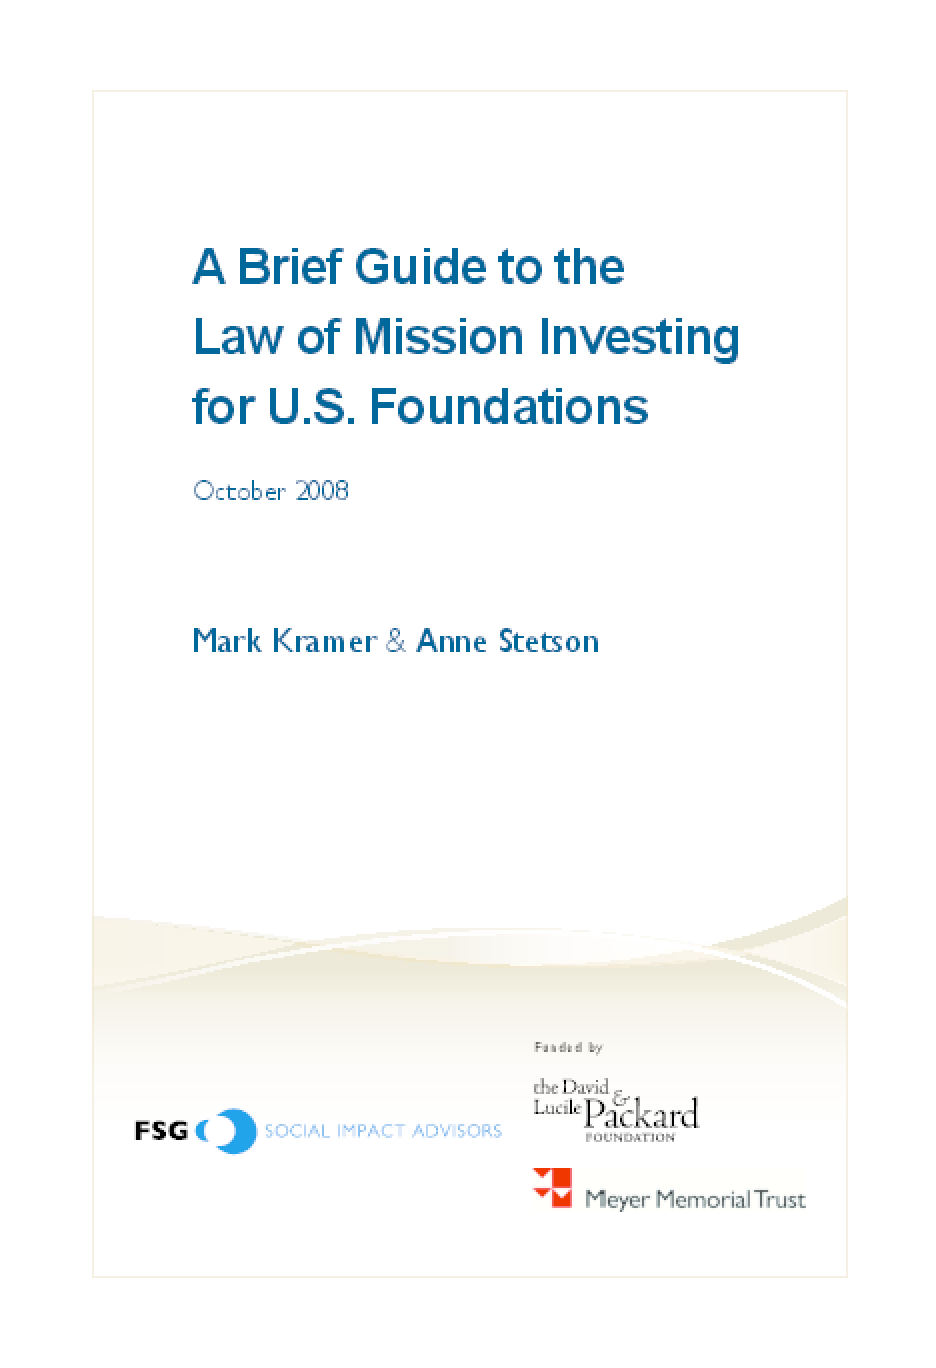 A Brief Guide to the Law of Mission Investing for U.S. Foundations